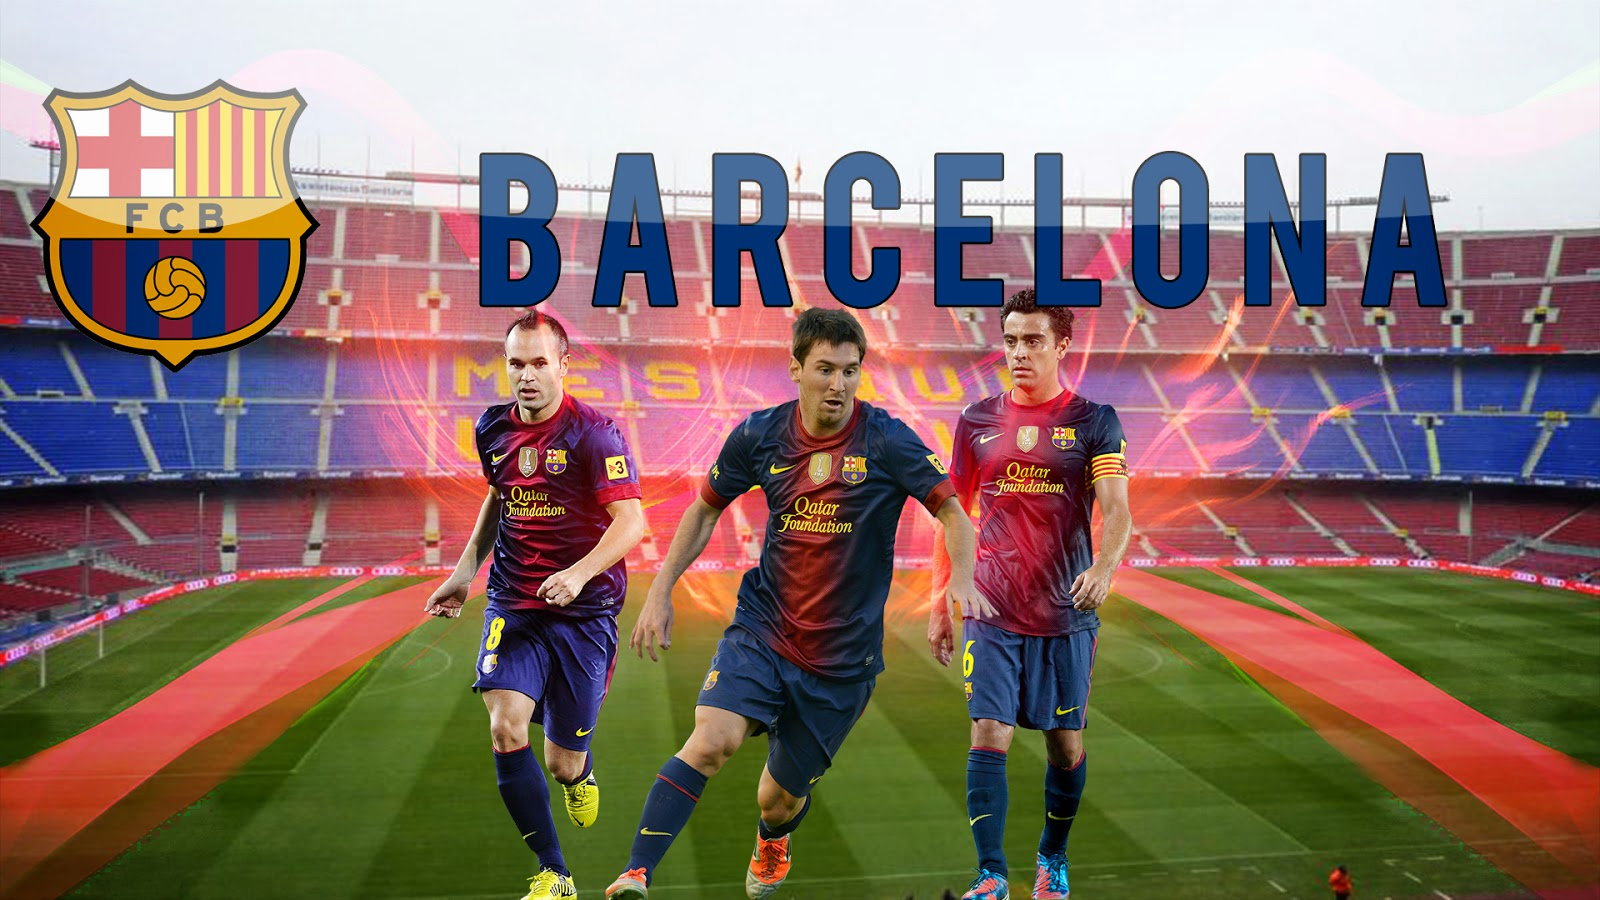 Iniesta Messi Xavi Barcelona Fc Free Wallpaper Hd Background Free Download Image Gallery Photo And Picture Imagehdfree